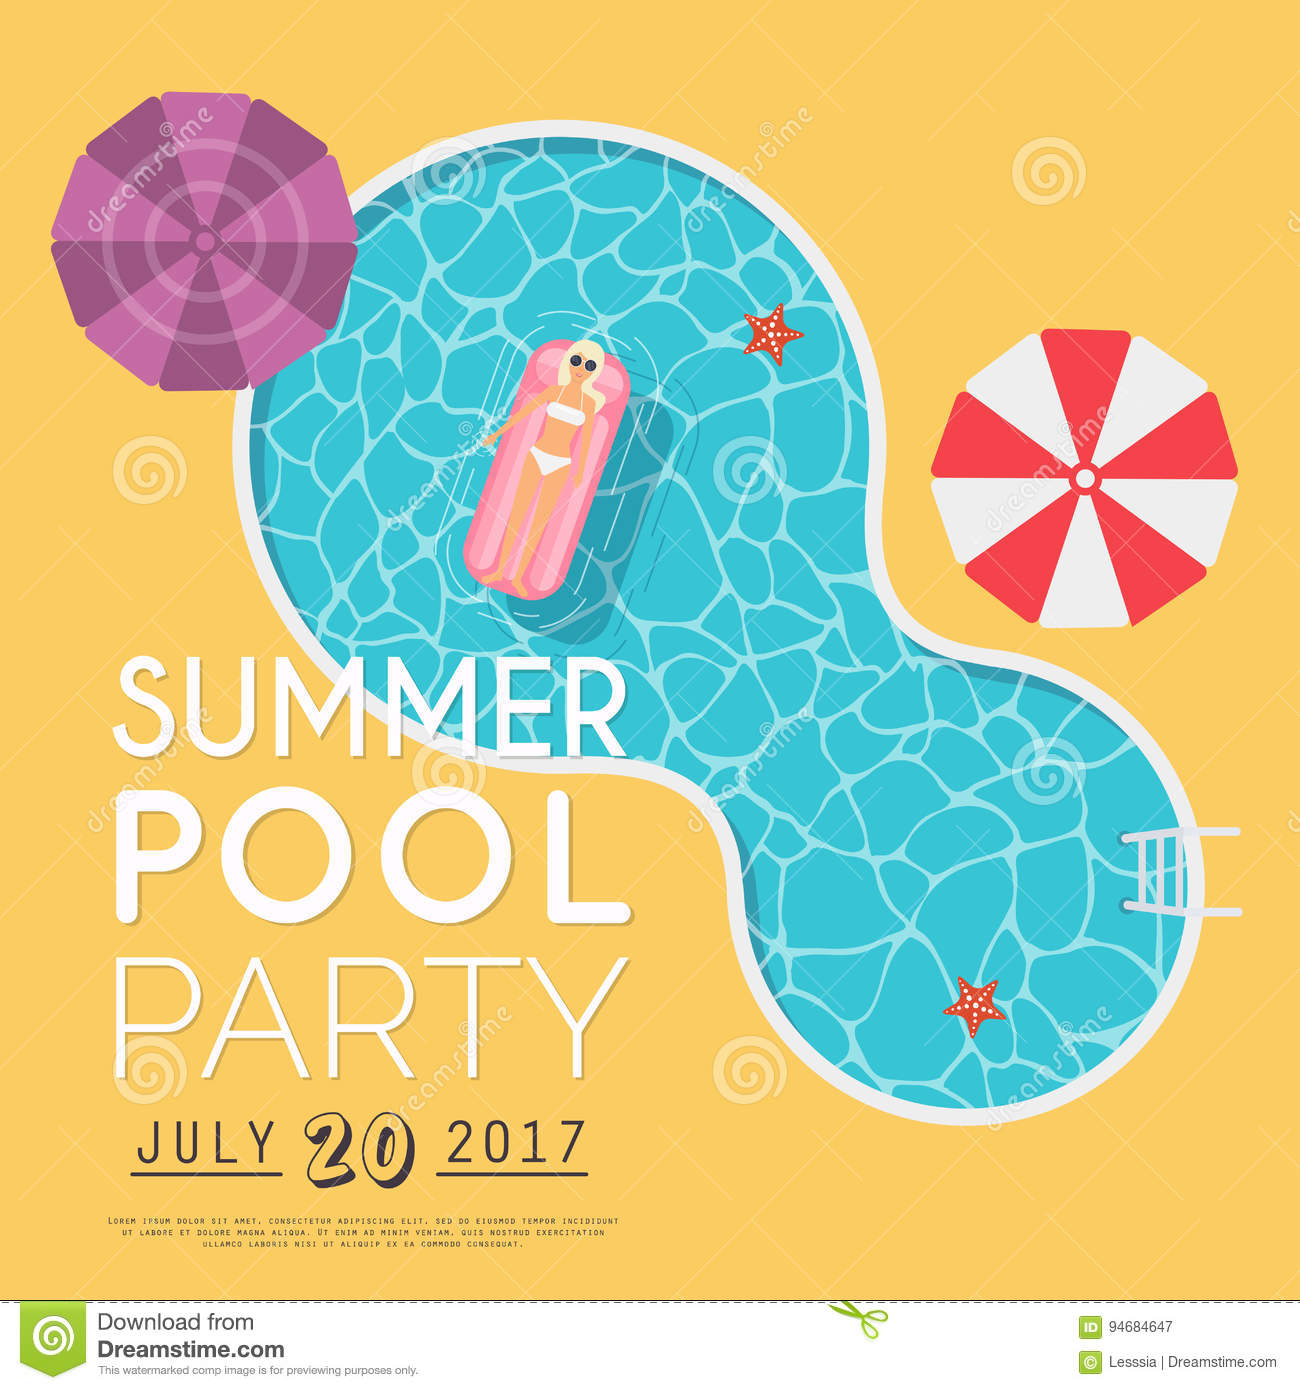 Summer pool party invitation flyer or banner template flat des summer pool party invitation flyer or banner template flat des royalty free vector monicamarmolfo Gallery